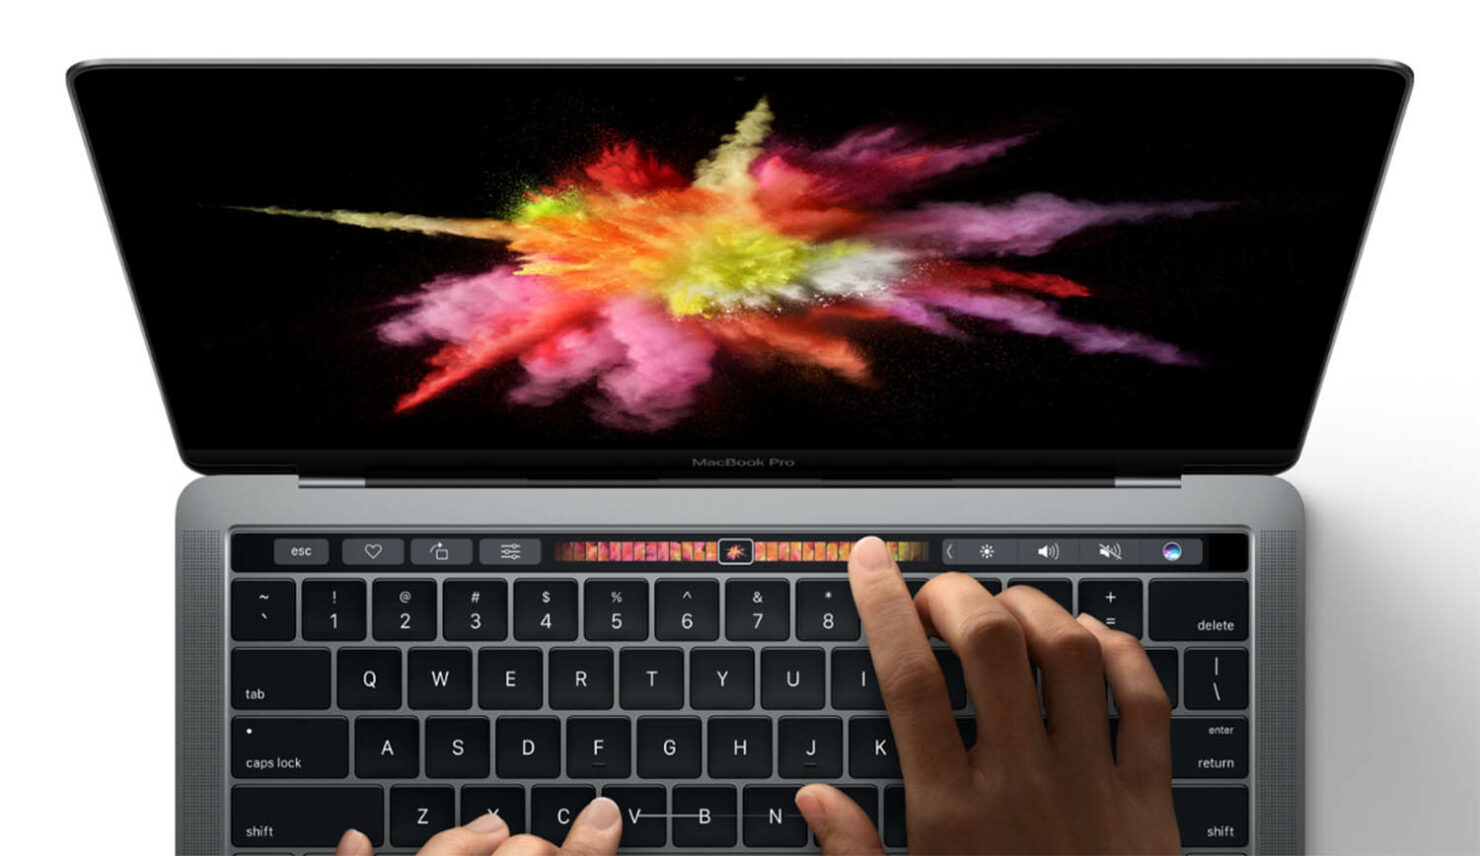 ARM-Based MacBook Pro Could Ship With Second-Generation Touch Bar and Face ID Capability, Says Tipster